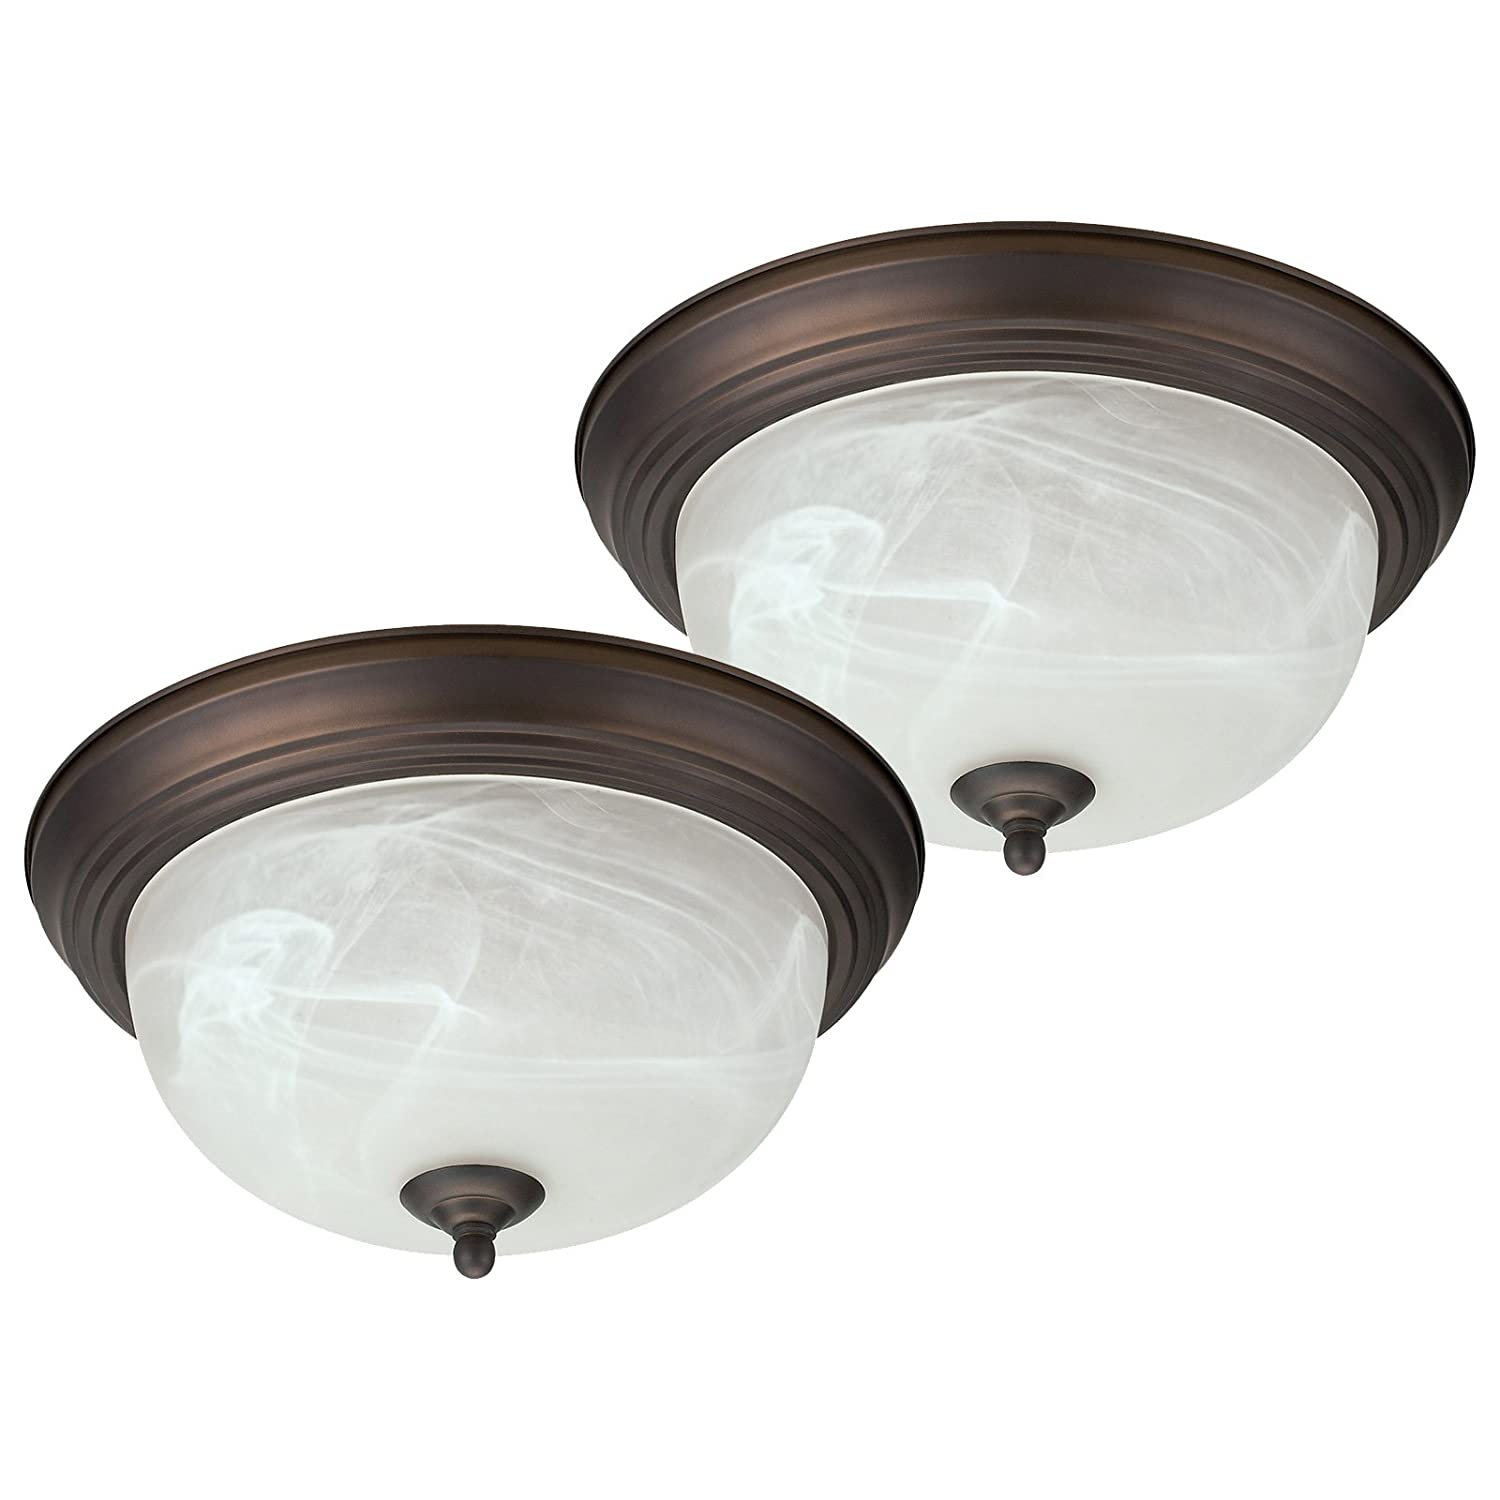 Oil Rubbed Bronze Flush Mount Ceiling Light Fixture Globe 13 ...